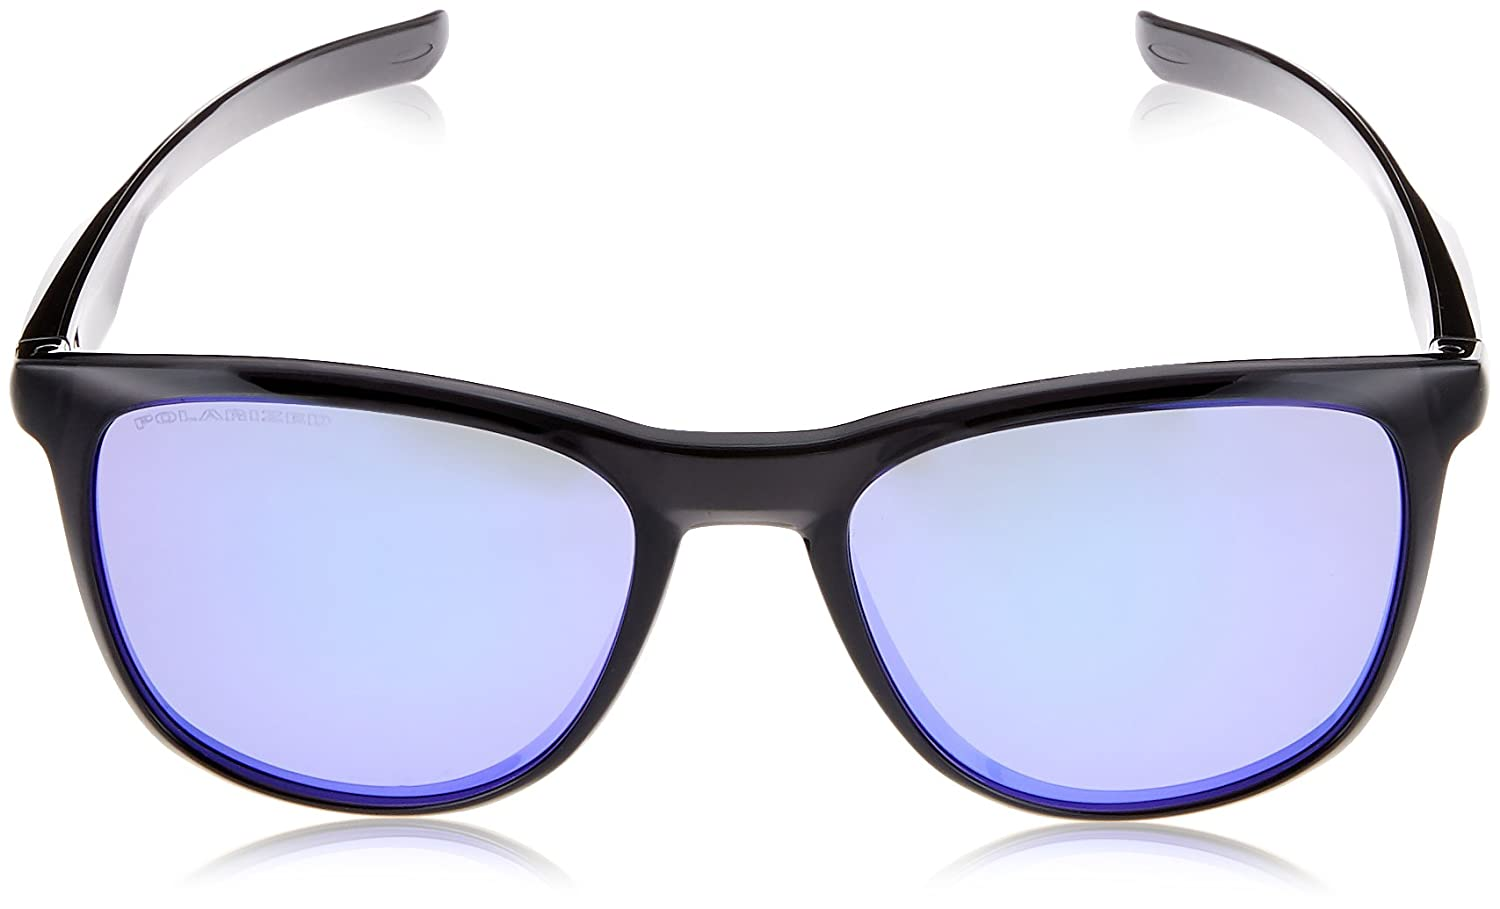 e802bf27af Amazon.com  Oakley Trillbe X Sunglasses Black Ink Violet  Oakley  Clothing